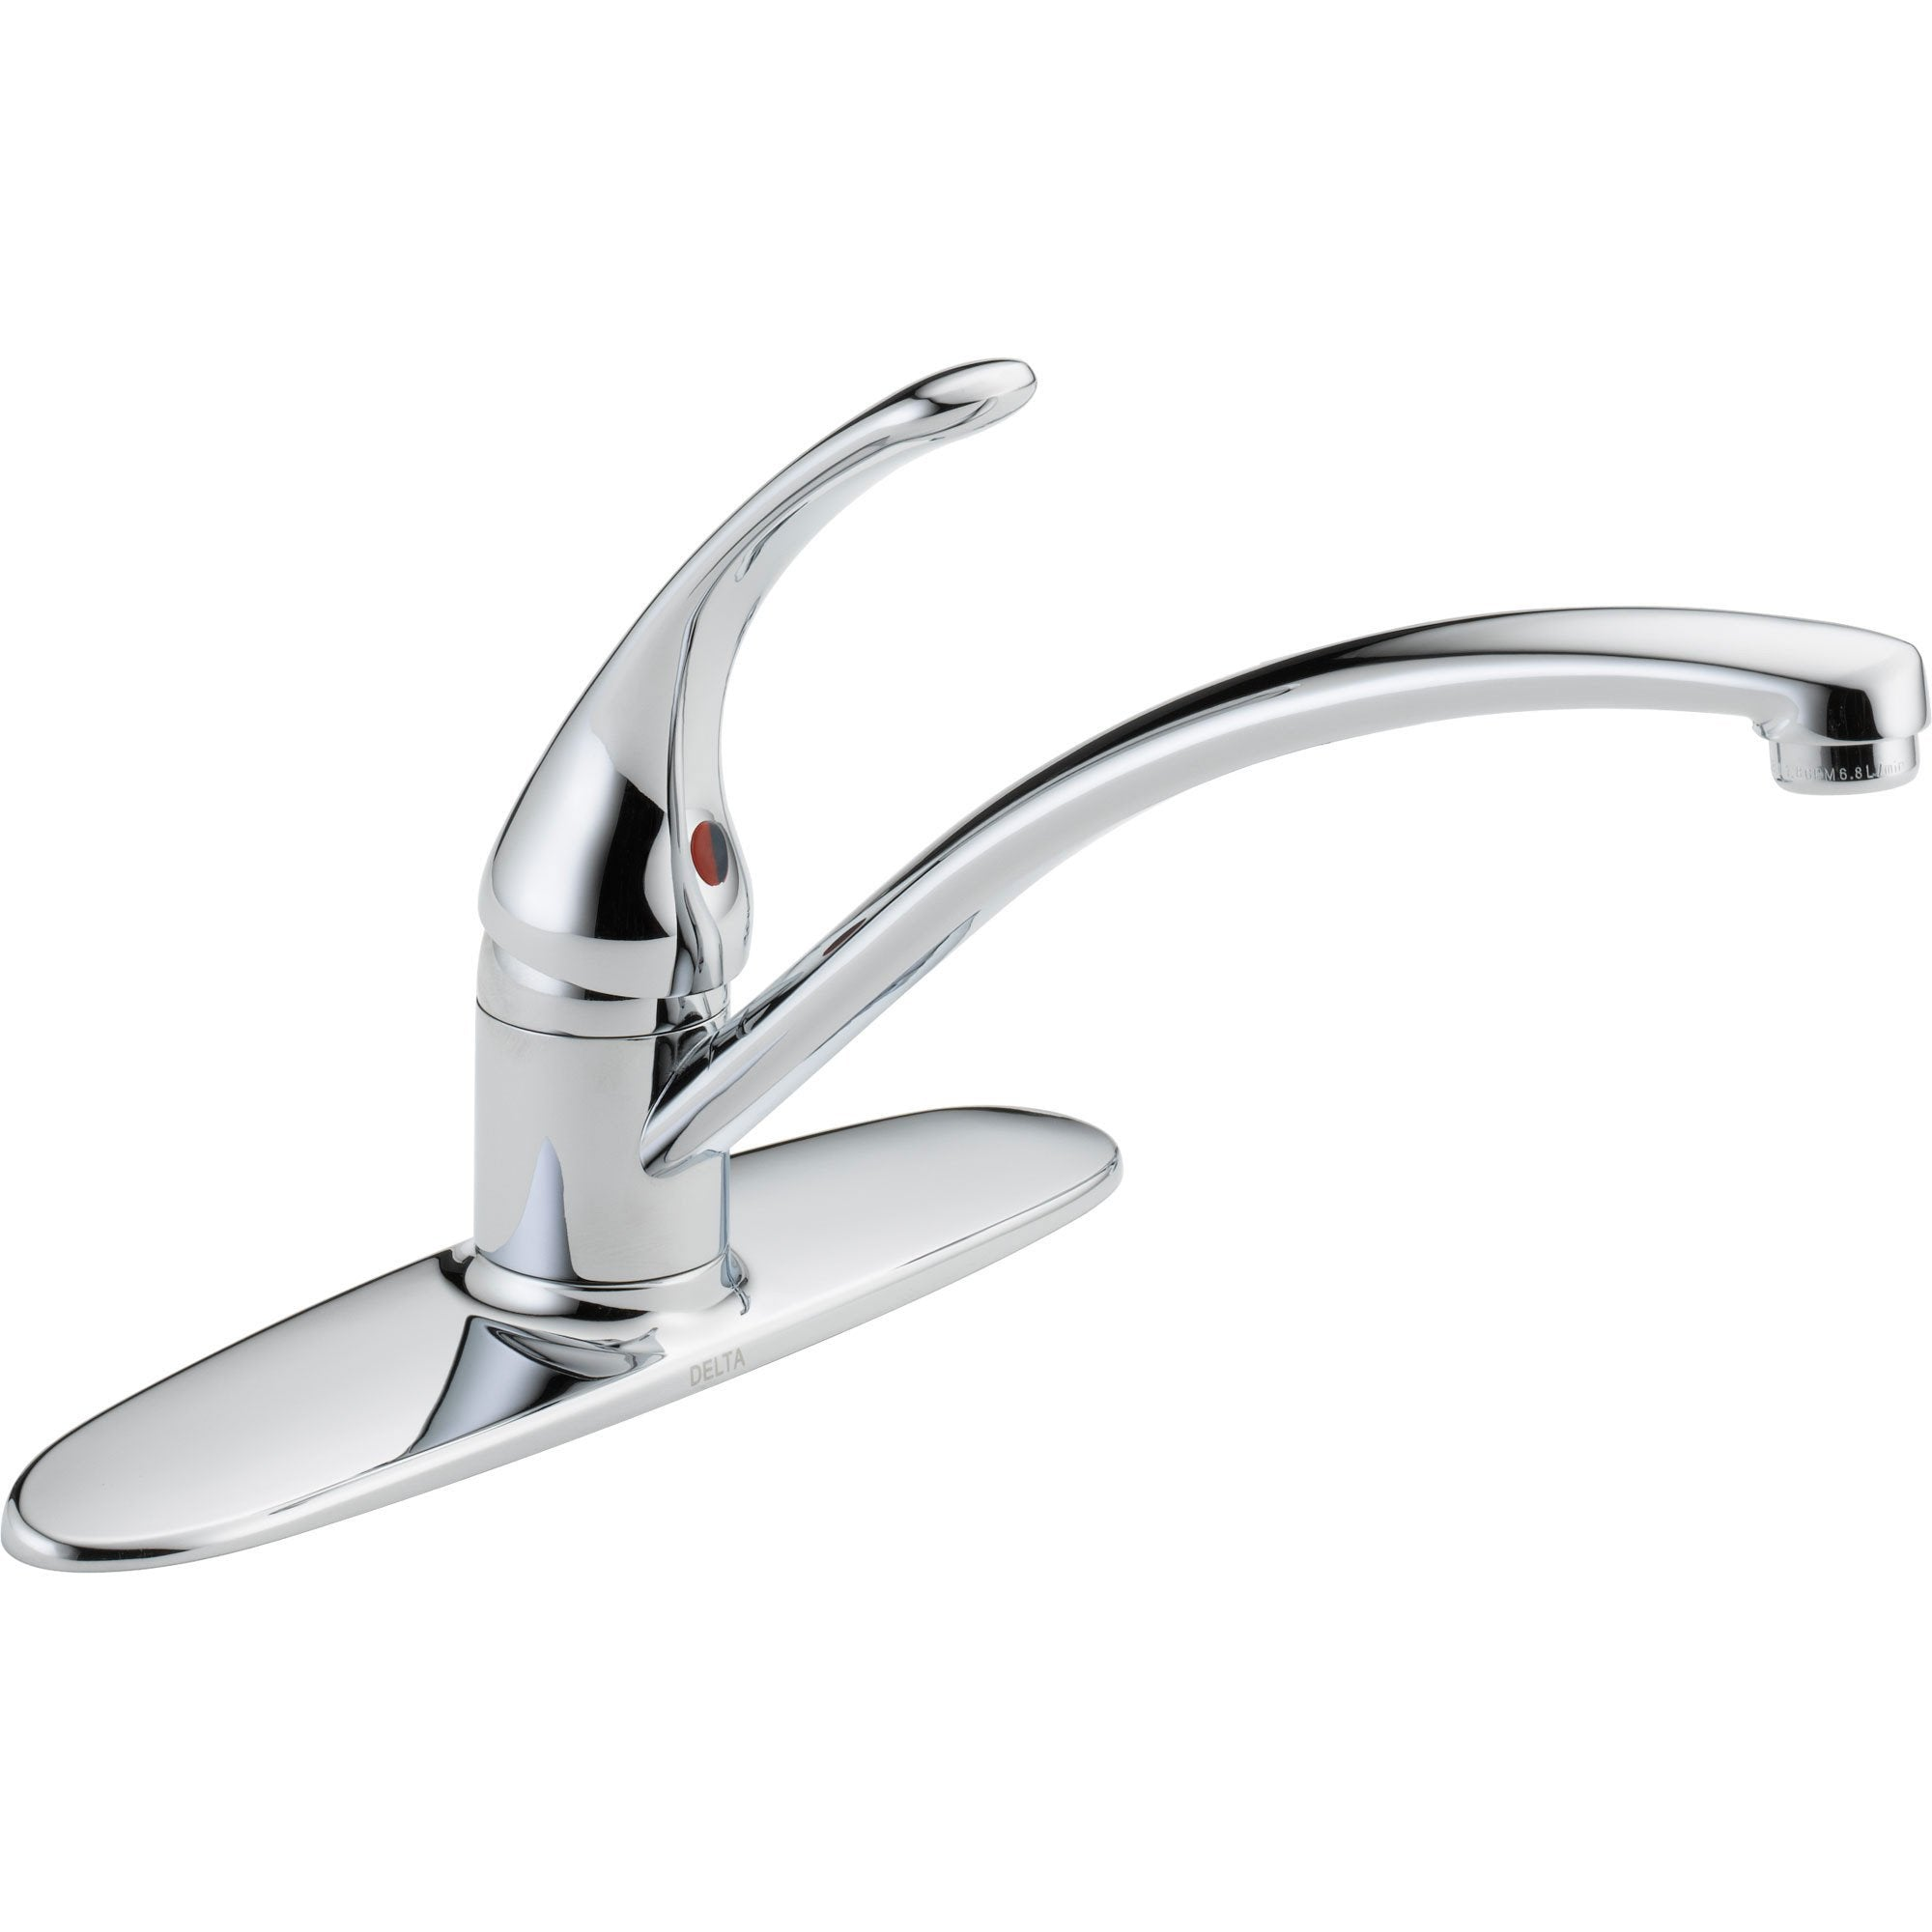 Delta Faucet RP19754 1.5 GPM Aerator Chrome Free Shipping